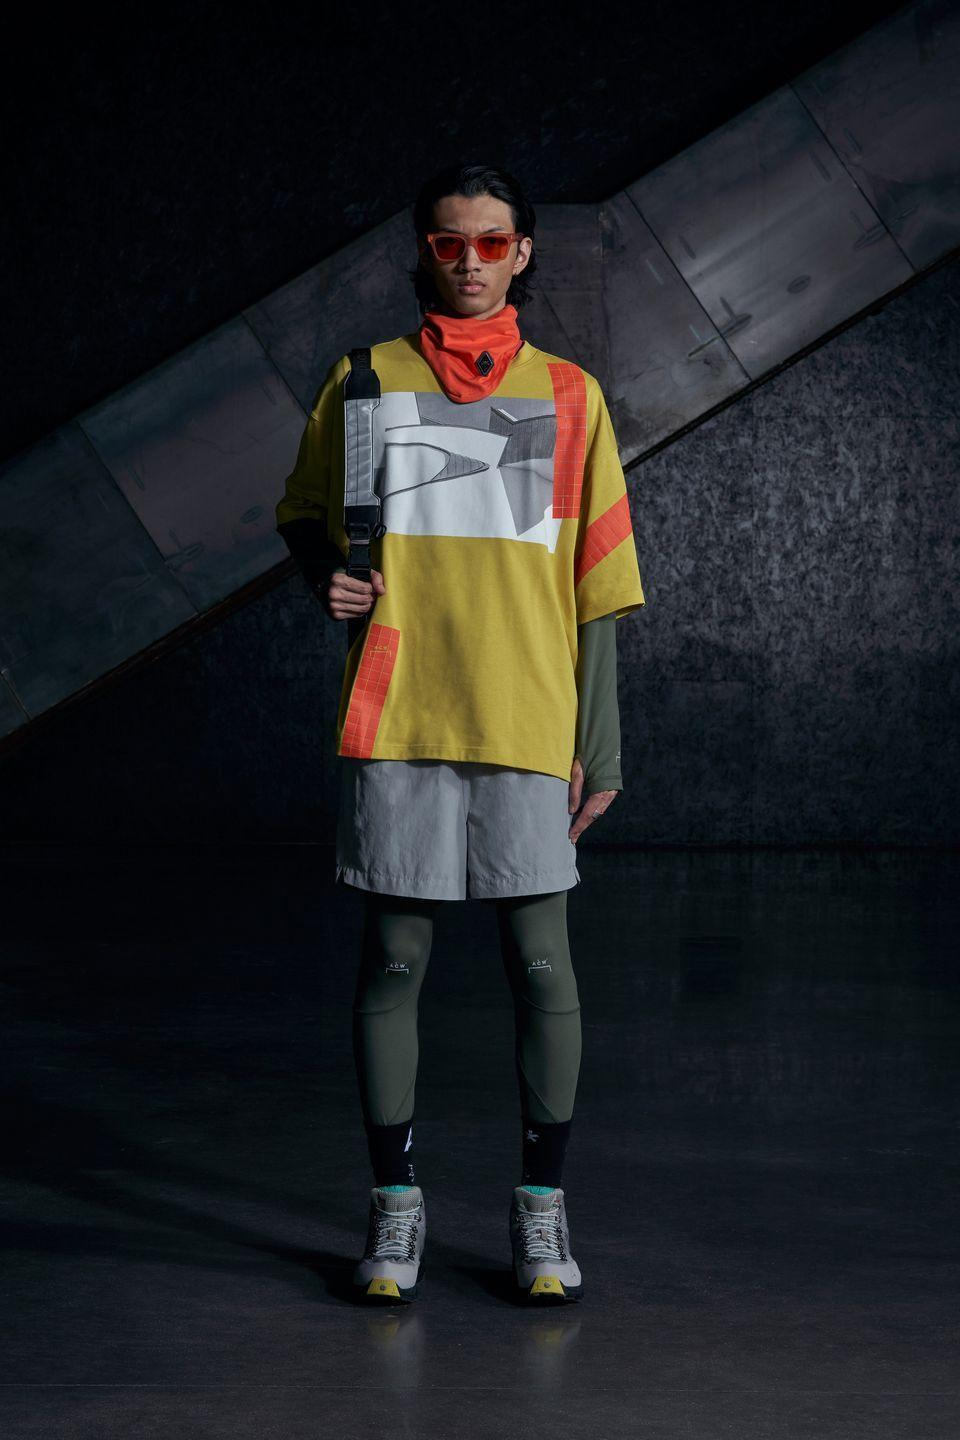 <p>Samuel Ross is a designer who, typically, works best with angles and an absence of colour. His clothes, with their asymmetrical zips, jagged patterns and utilitarian overtones are often high performance, architectural, sculptural, sepulchral, conceptual. For this season, though, there's a lot of colour! Slime green, high-vis orange and pastel-ish yellow run throughout. Here is an example of a more vibrant Ross, the t-shirt printed with a Le Corbusier detail is a clever and on-brand take on graphic streetwear, paired with tech fabrics and summer colour. Architectural, but also... fun!</p><p><strong>Finlay Renwick, Deputy Style Editor</strong></p>